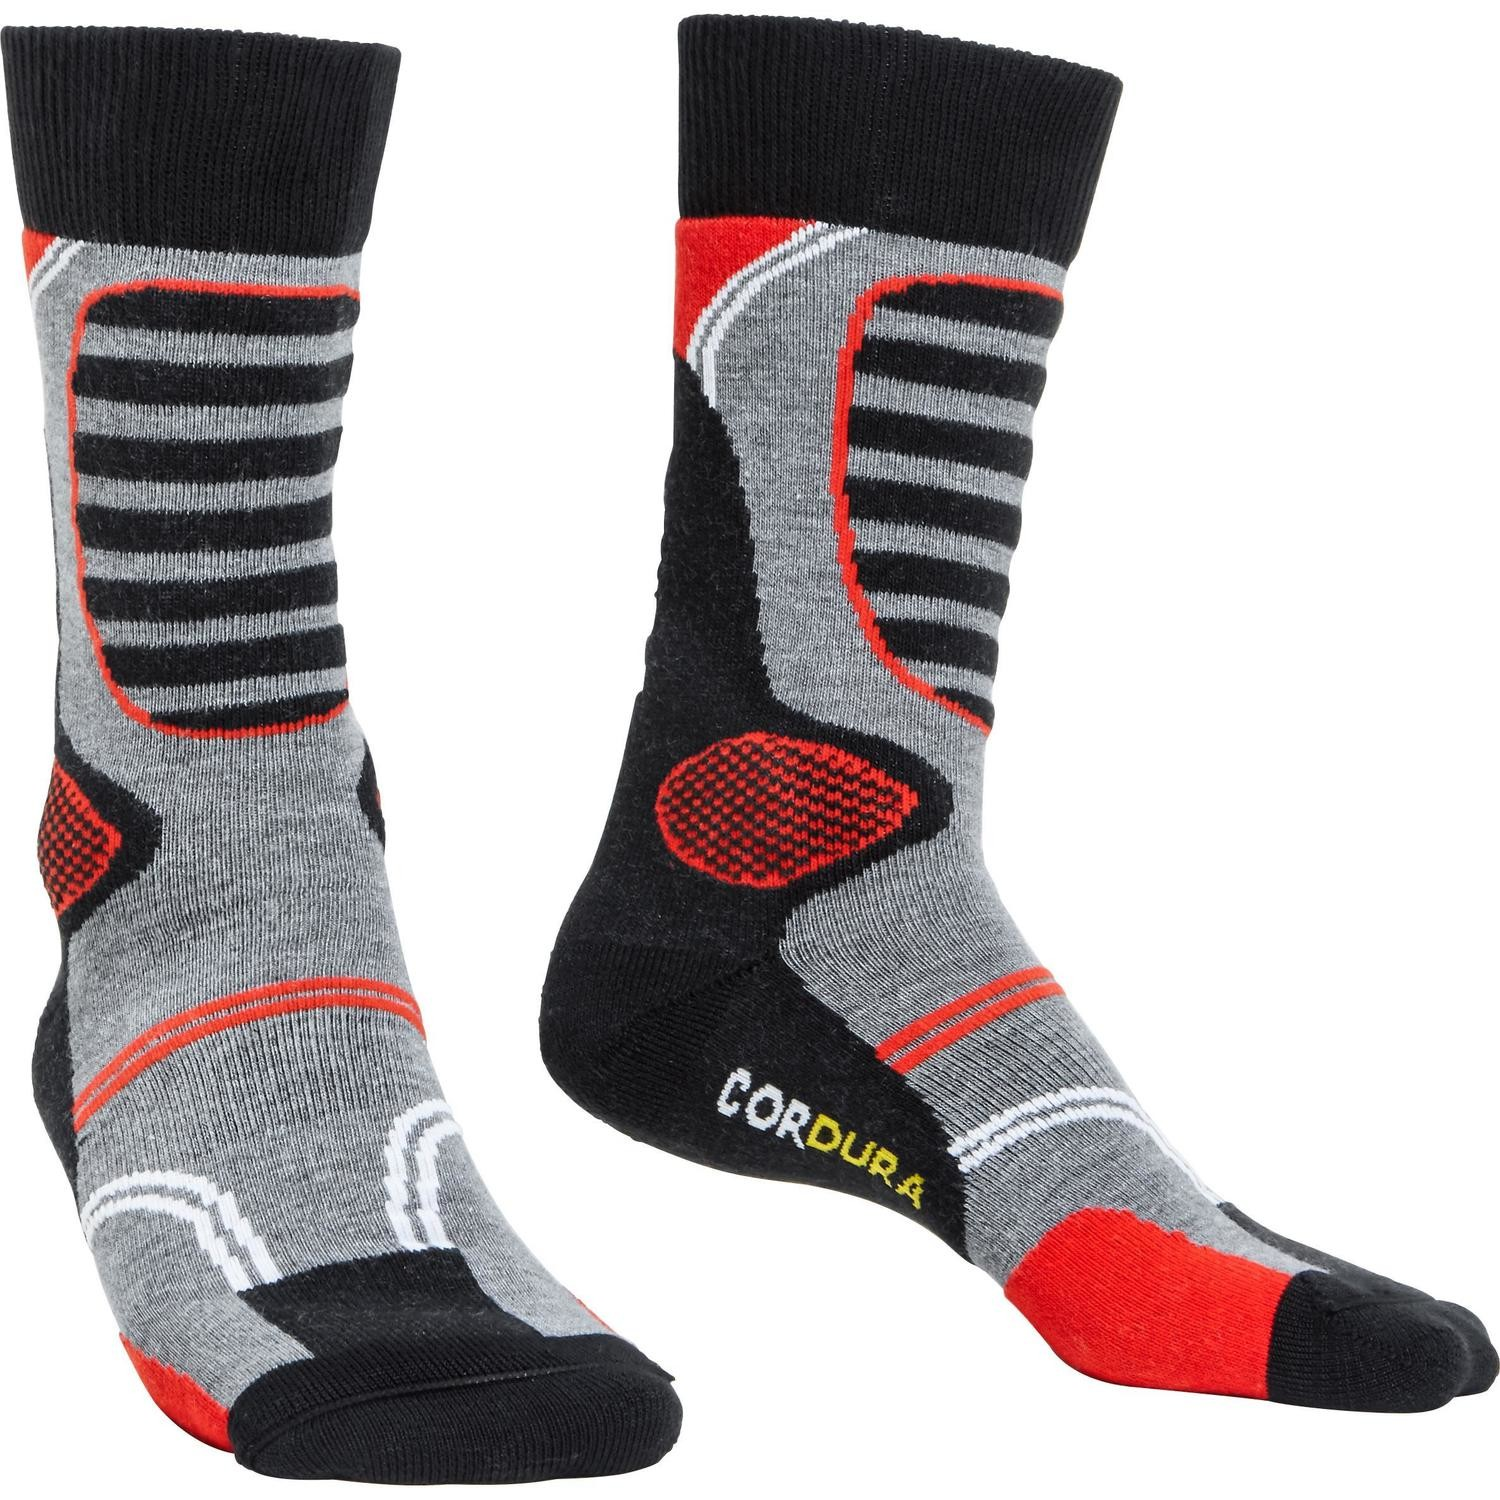 Мото носки Functional socks 1.0 black 43 - 46